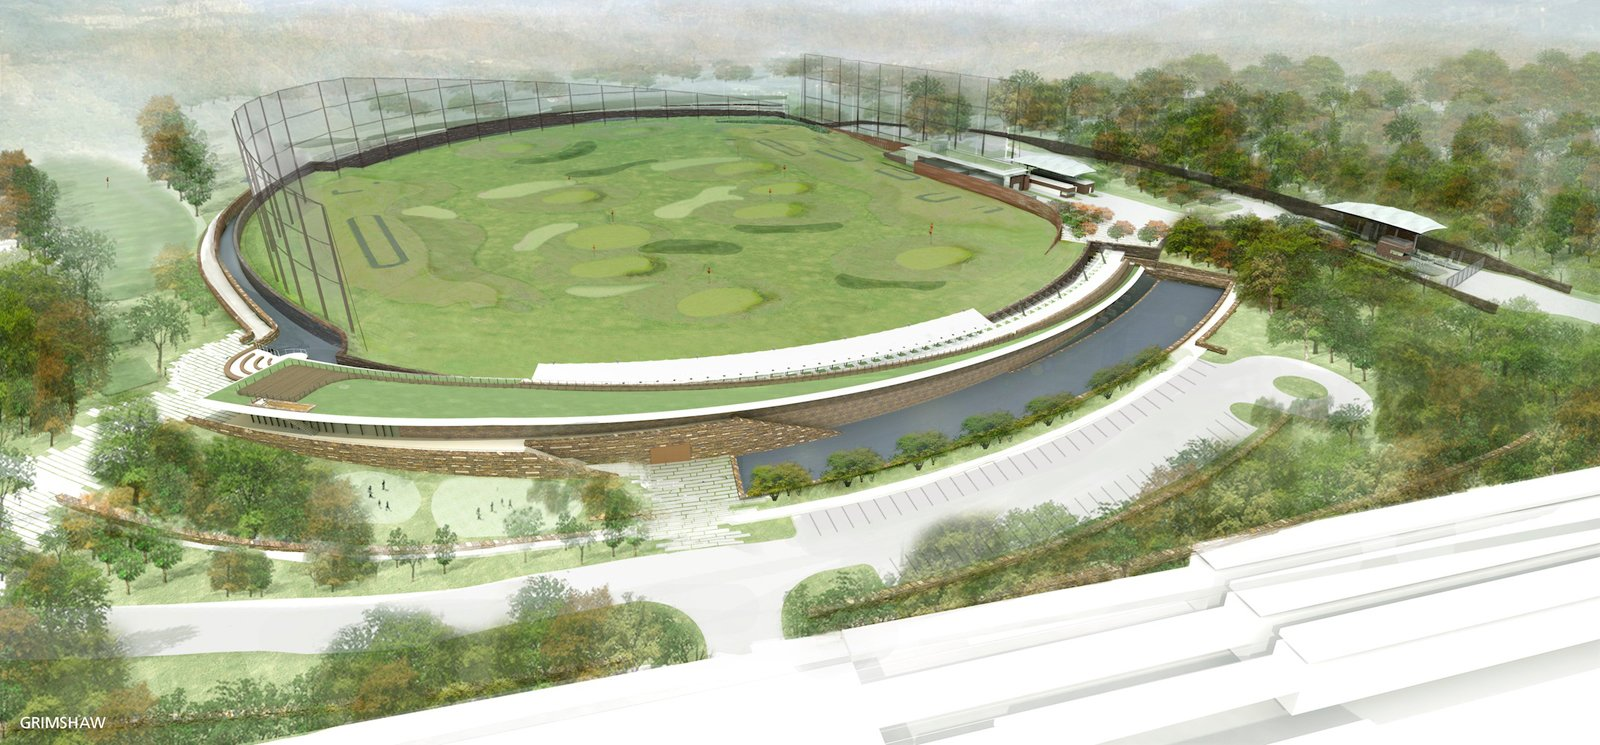 Croton Water Treatment Plant by Grimshaw Architects.